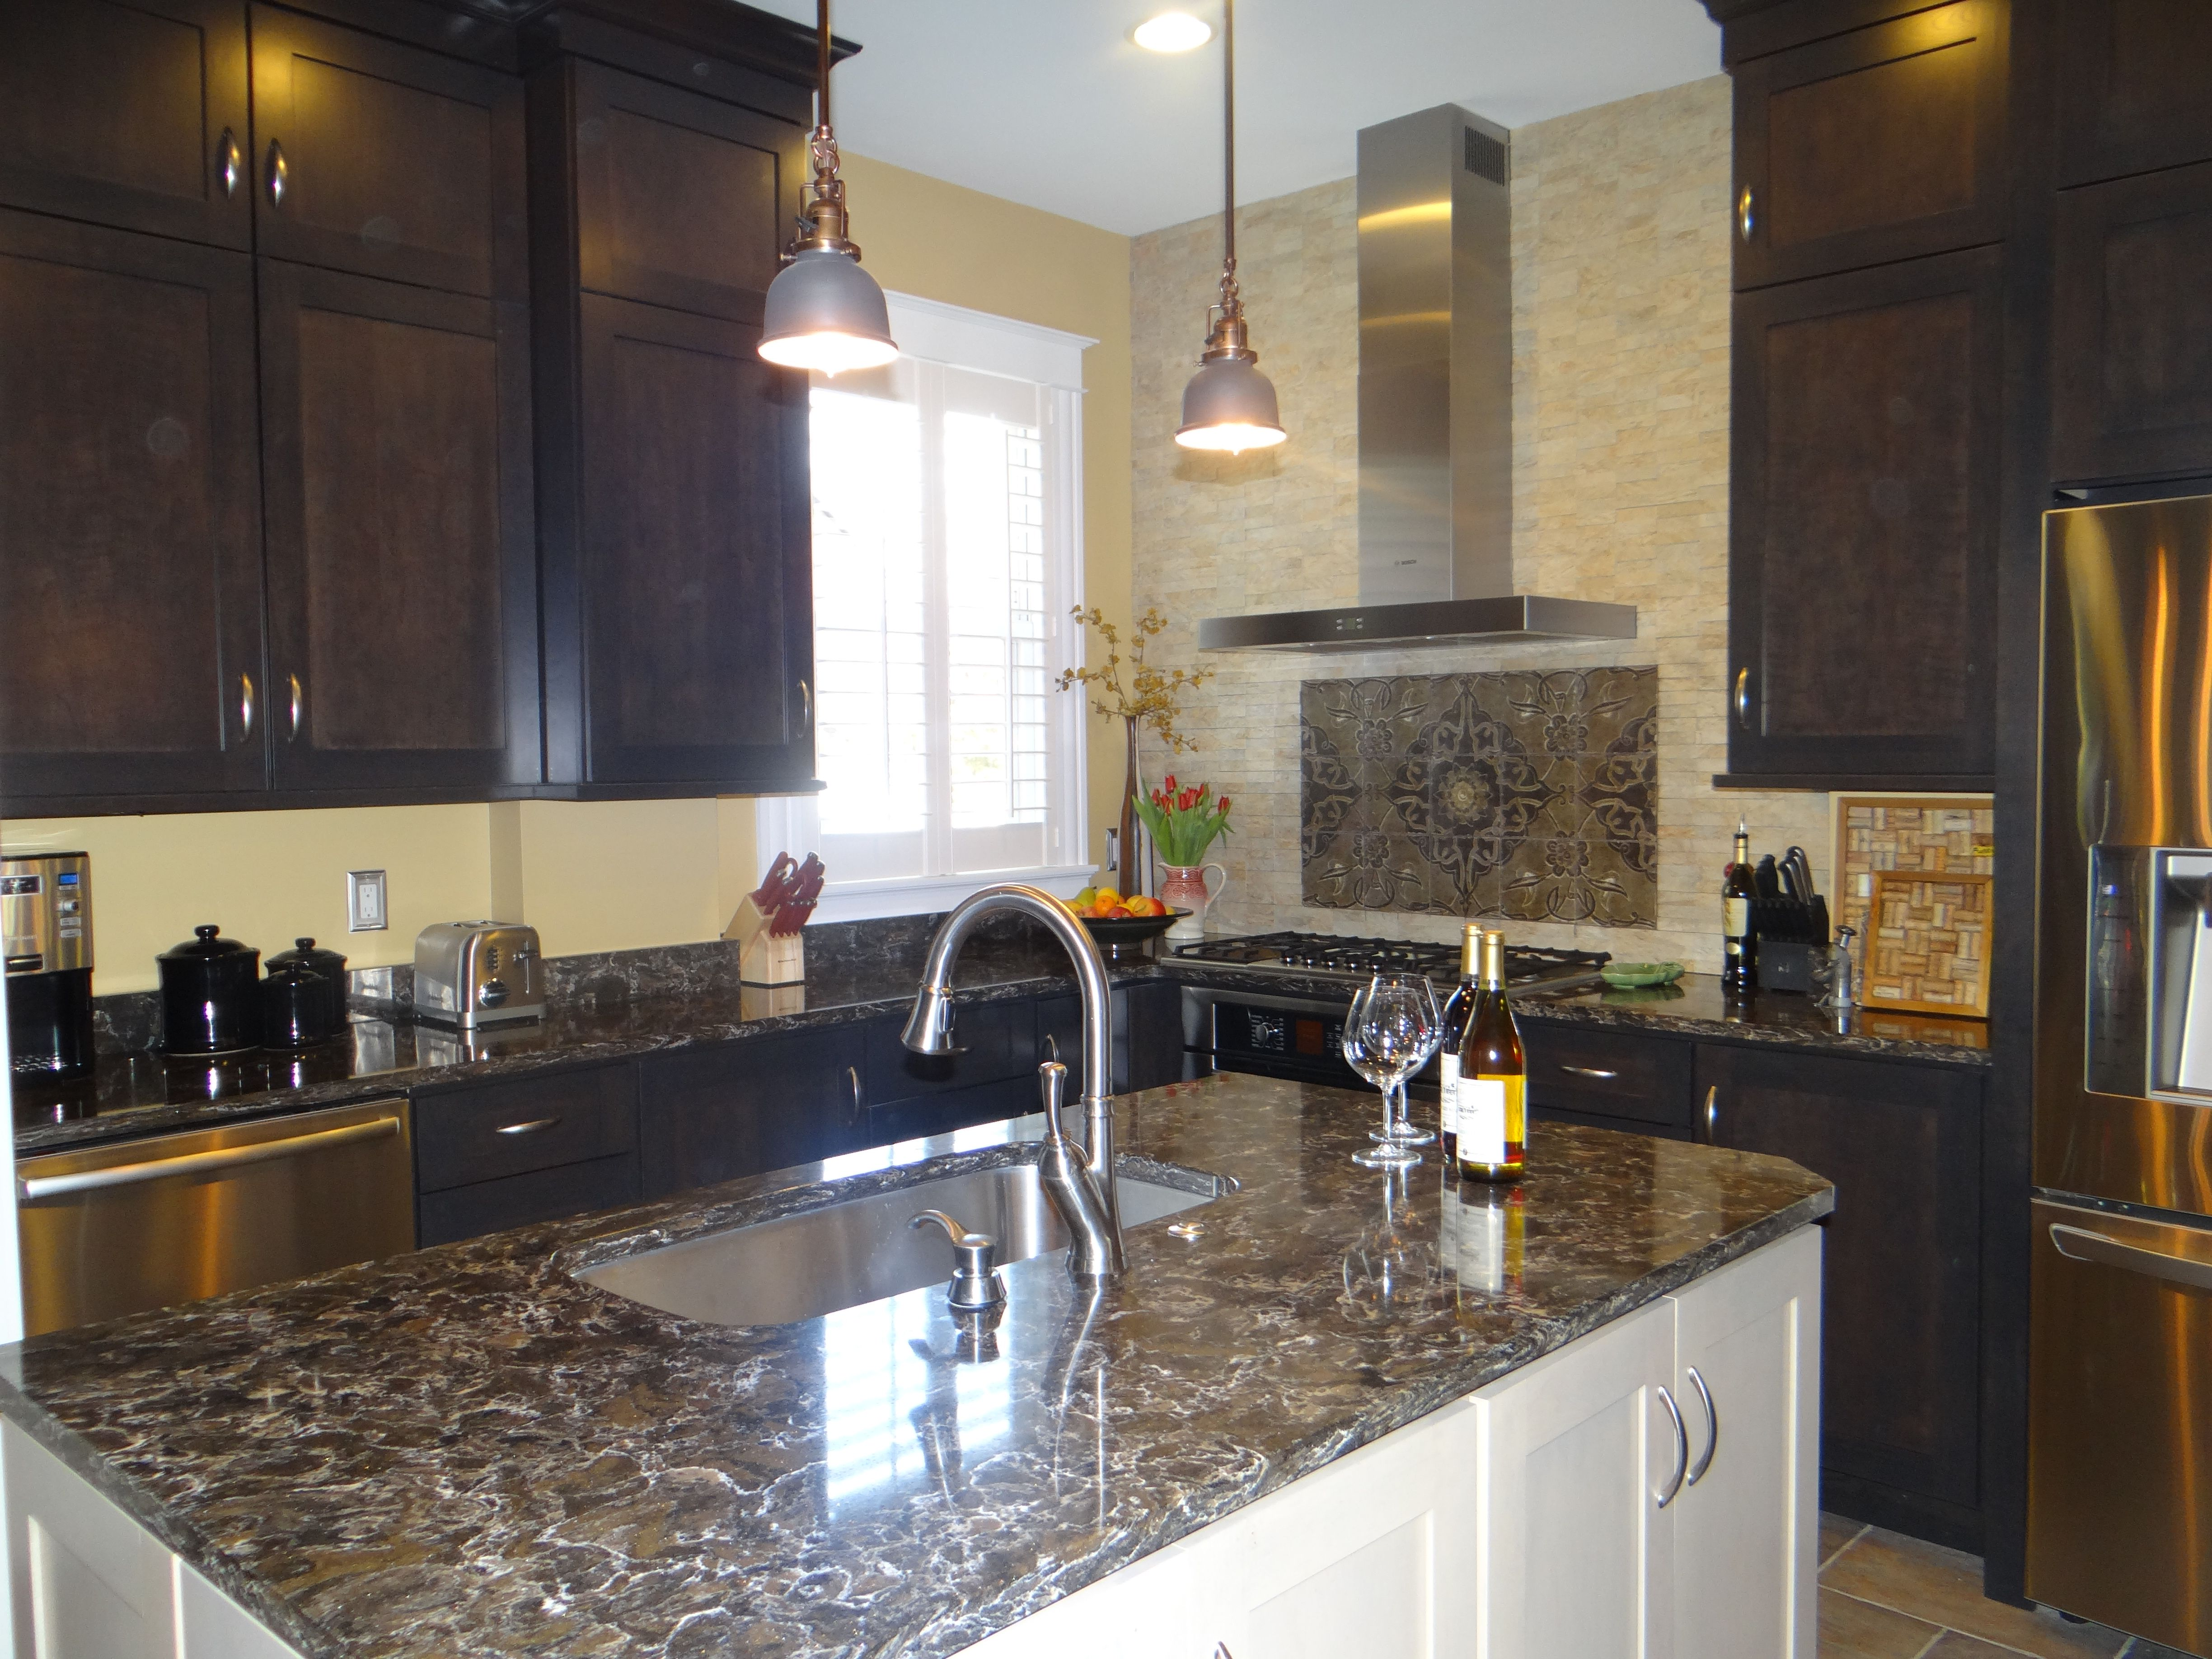 Great Contrasting Center Center Island Counters Cambria Counters Center Island Small Kitchen Renovation Contrasting Center Custom Back Small Kitchen Renovation kitchen Center Island Countertops